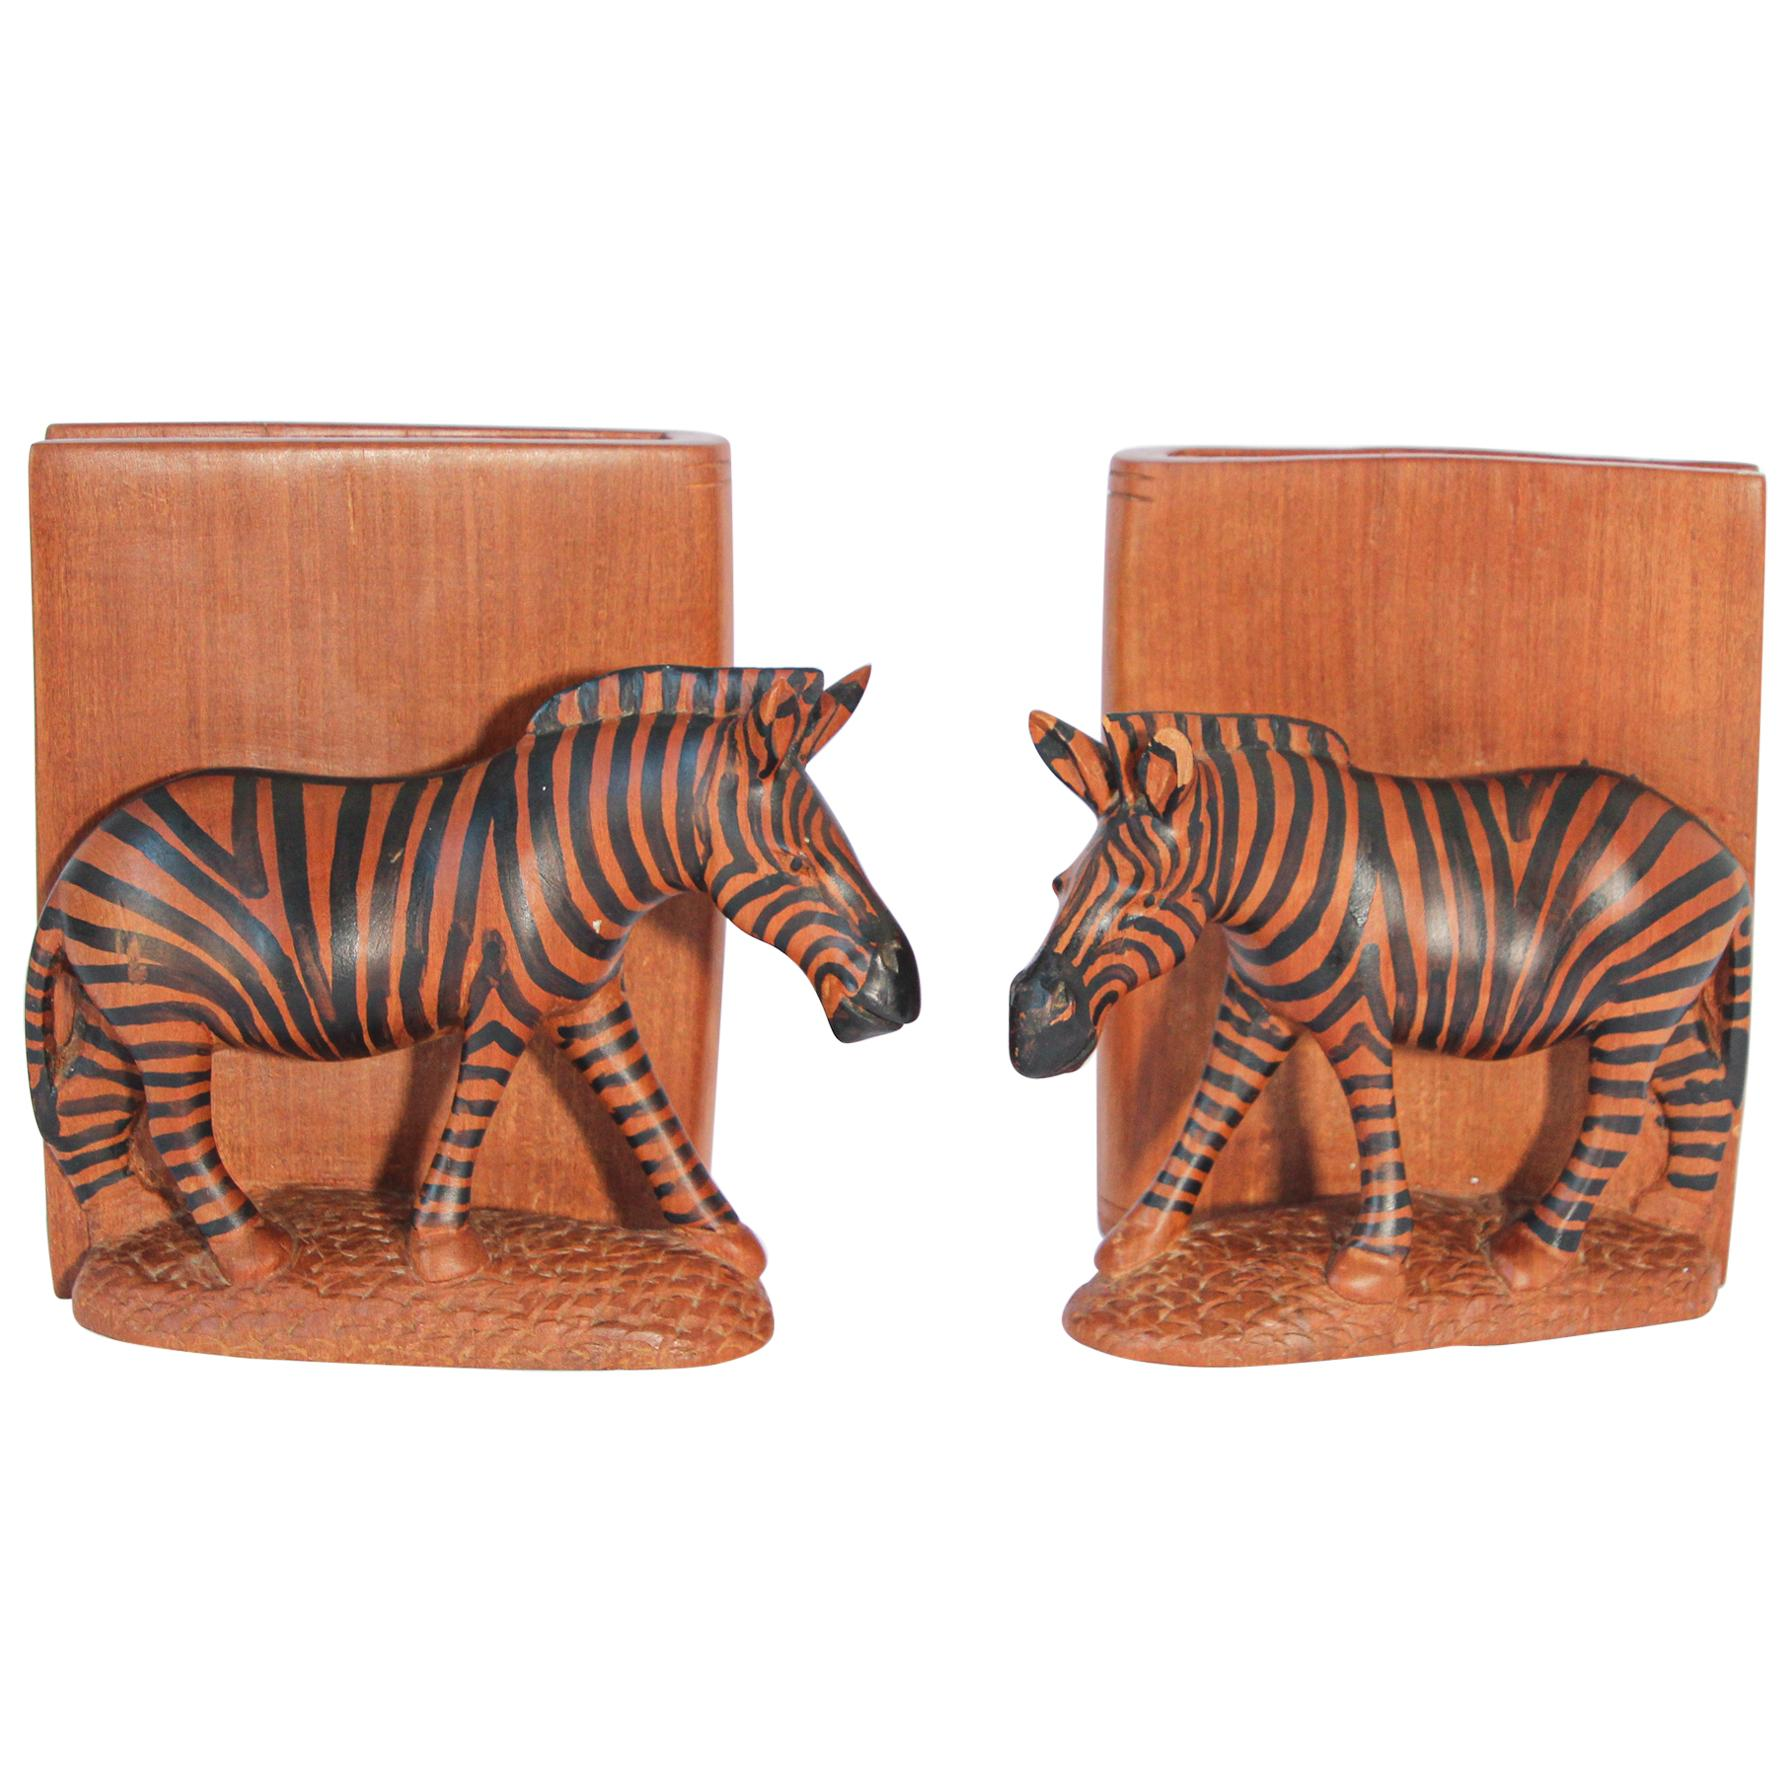 Hand Carved African Zebra Bookends